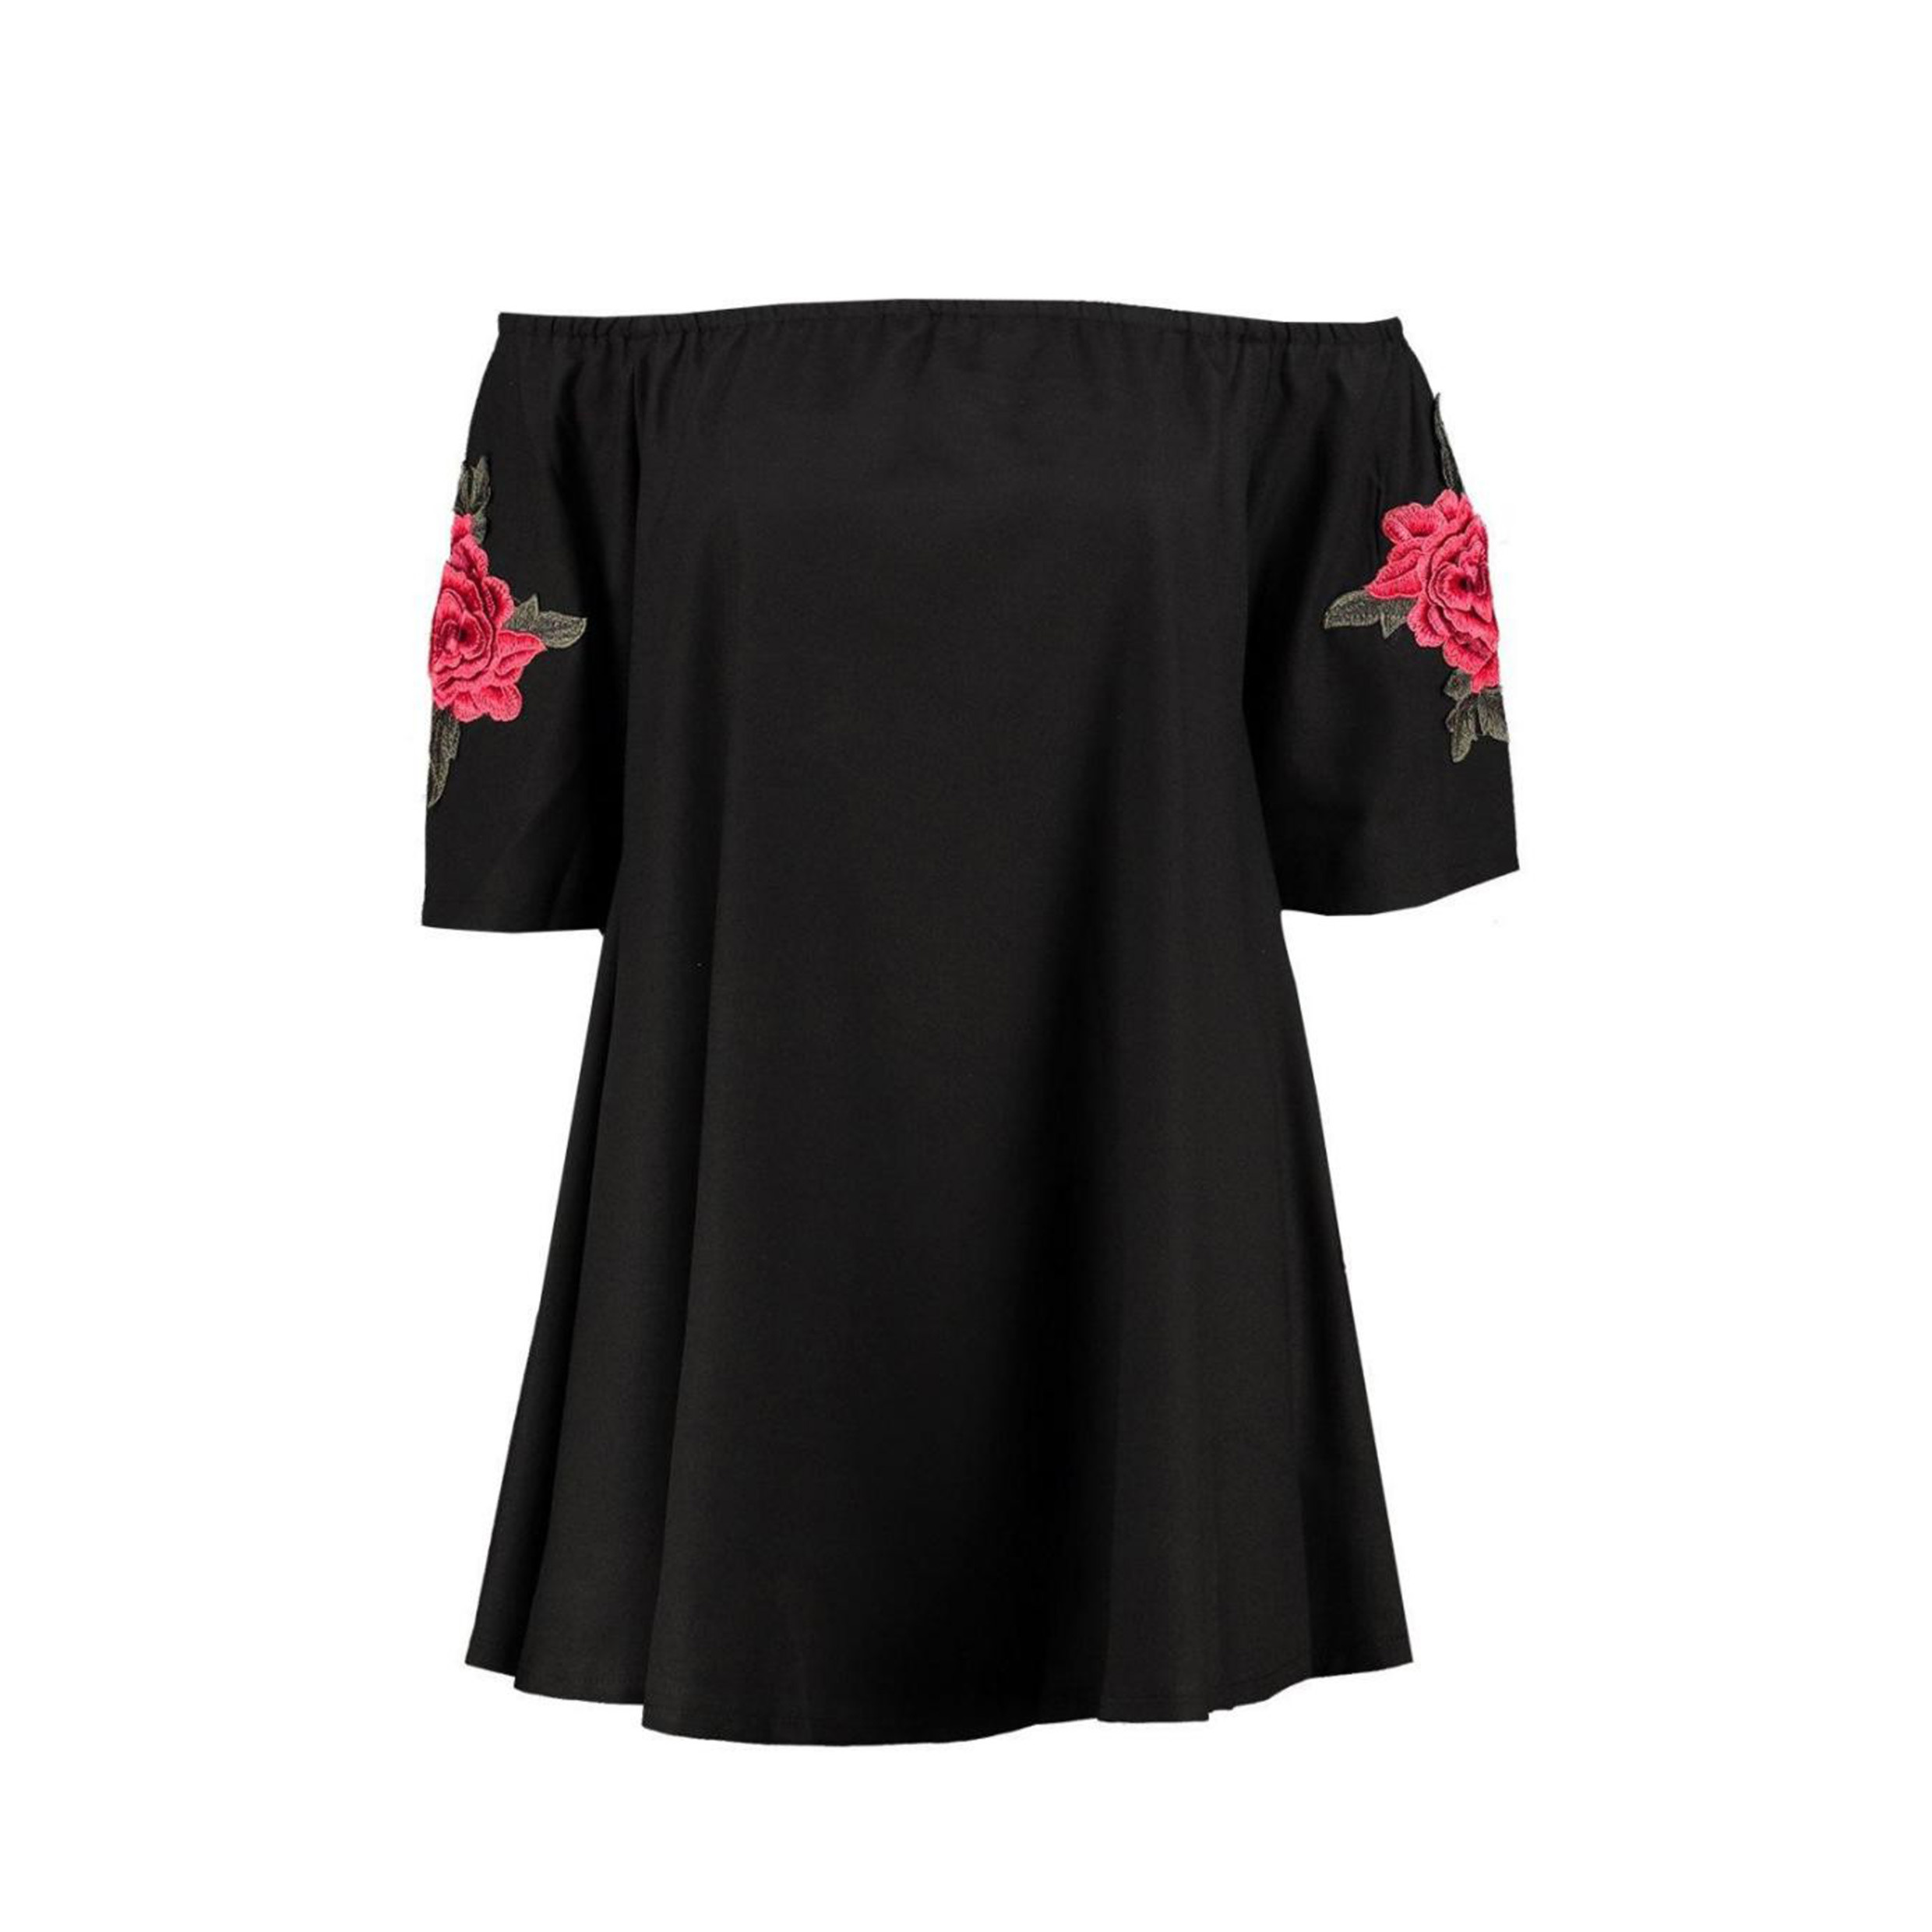 Fashion Women Casual Loose Sexy Flower Embroidery Party Tube Dress